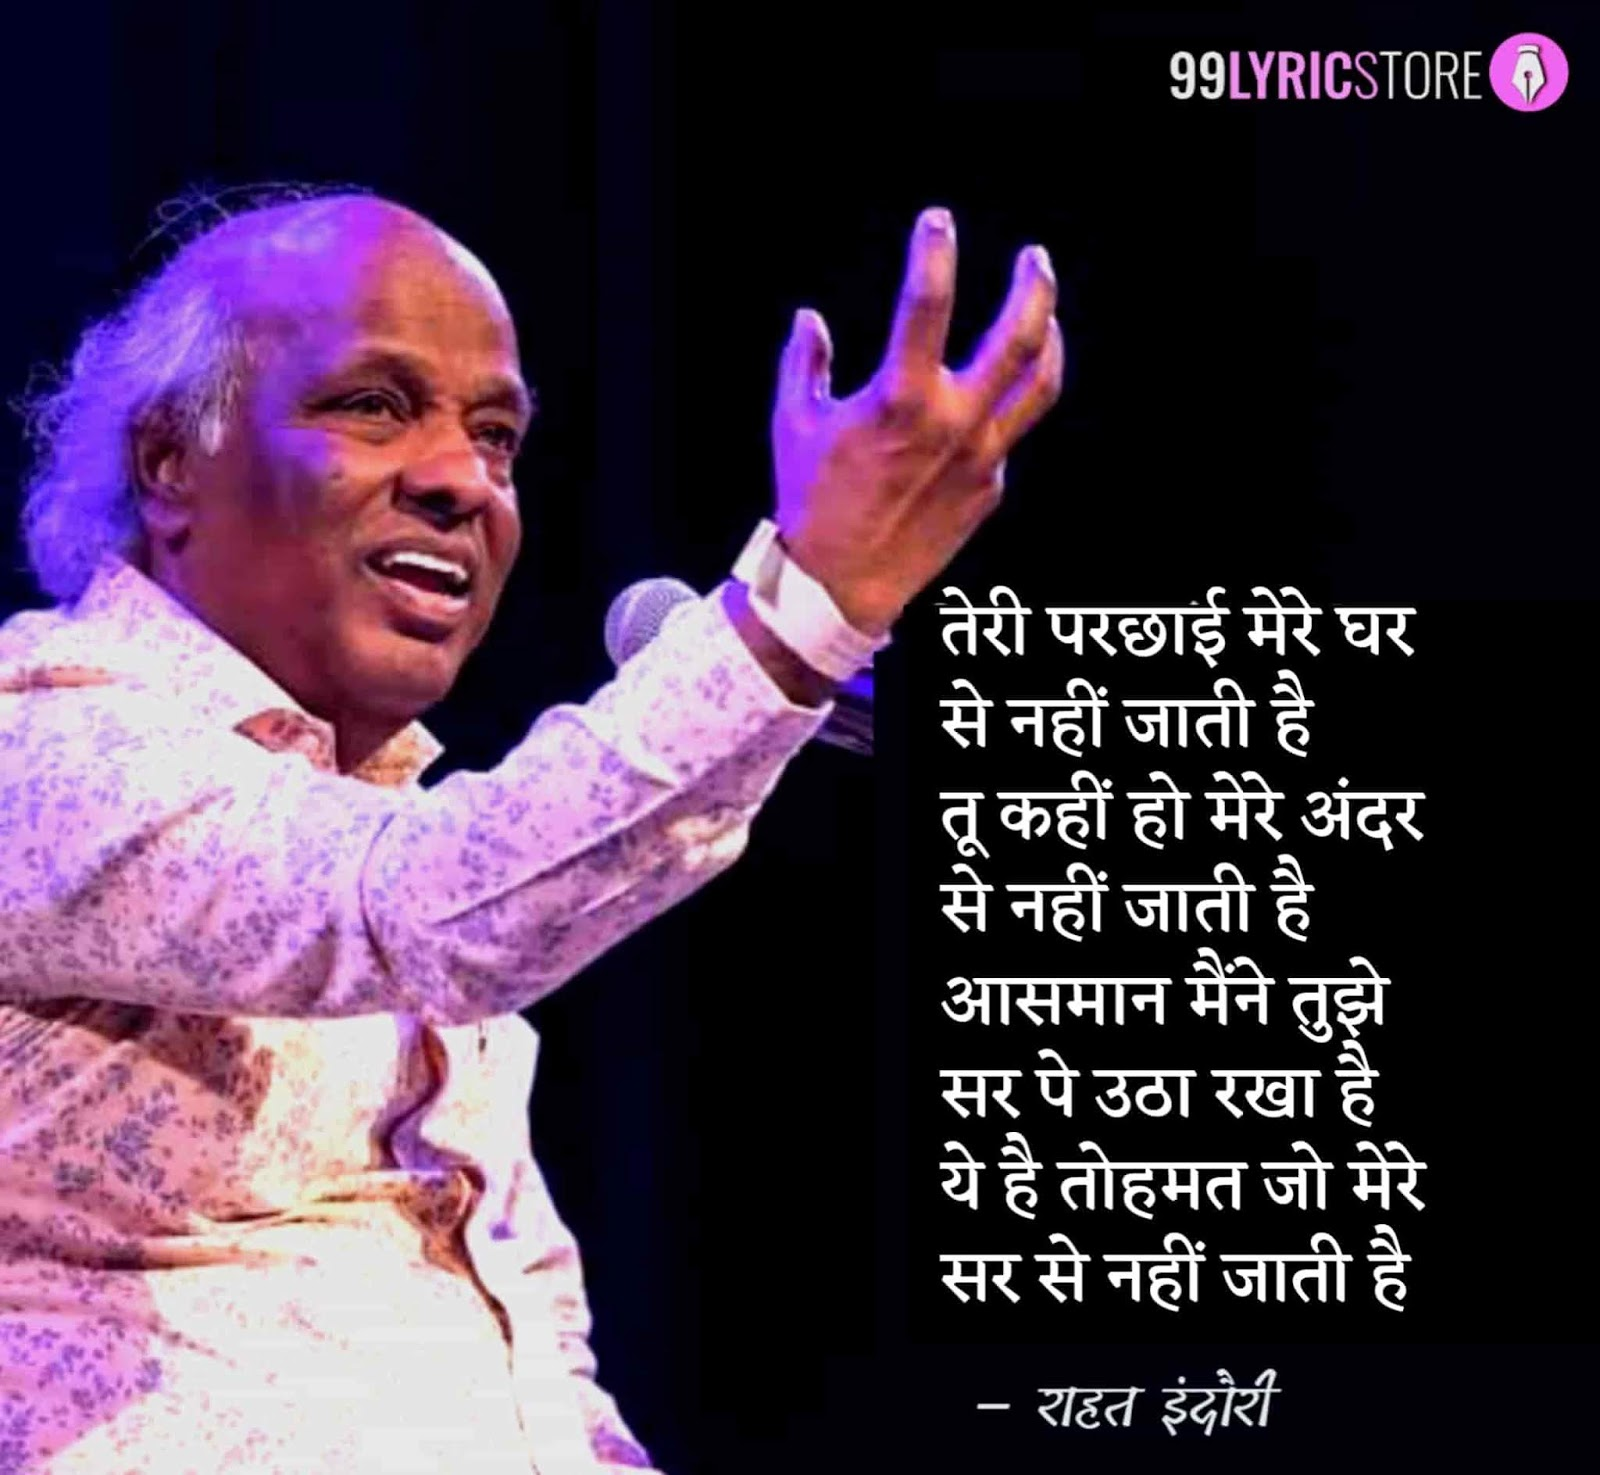 This beautiful shayari 'Teri Parchhaai Mere Ghar Se Nahi Jaati Hai' which is written and performed by famous legend Shayar Dr. Rahat Indori.